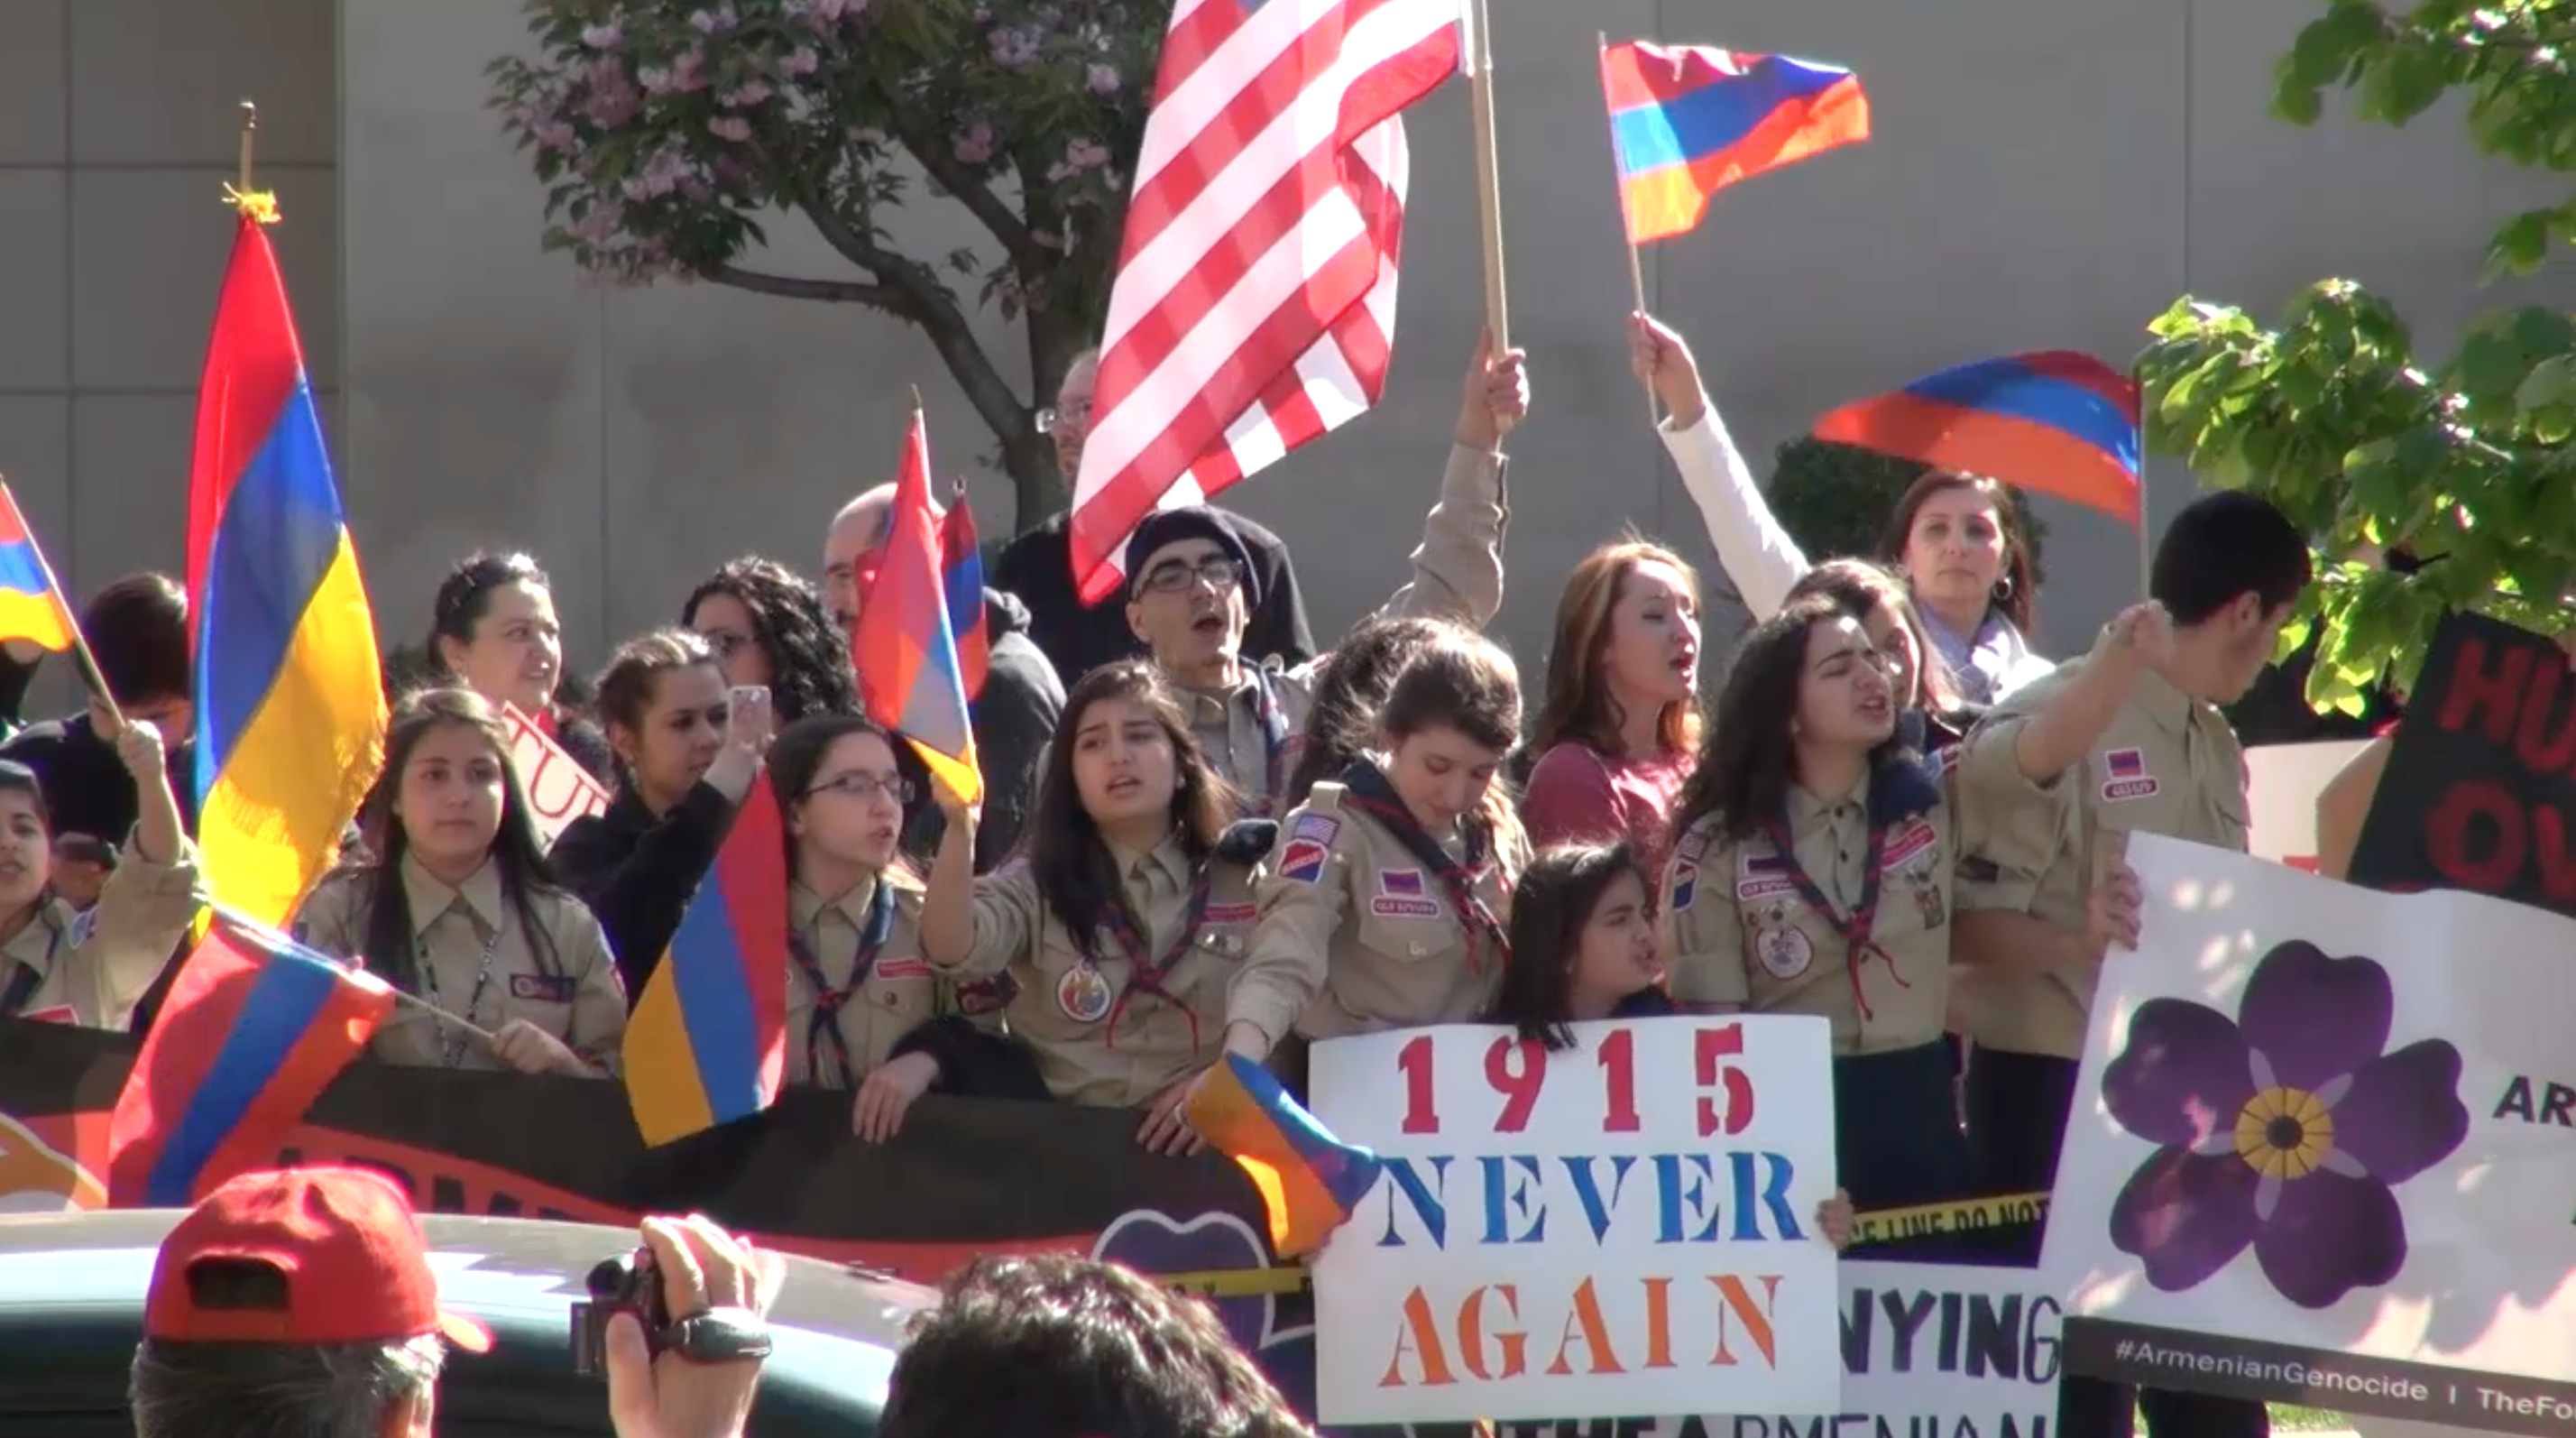 Some Armenians say move to label 1915 killings as genocide gaining momentum